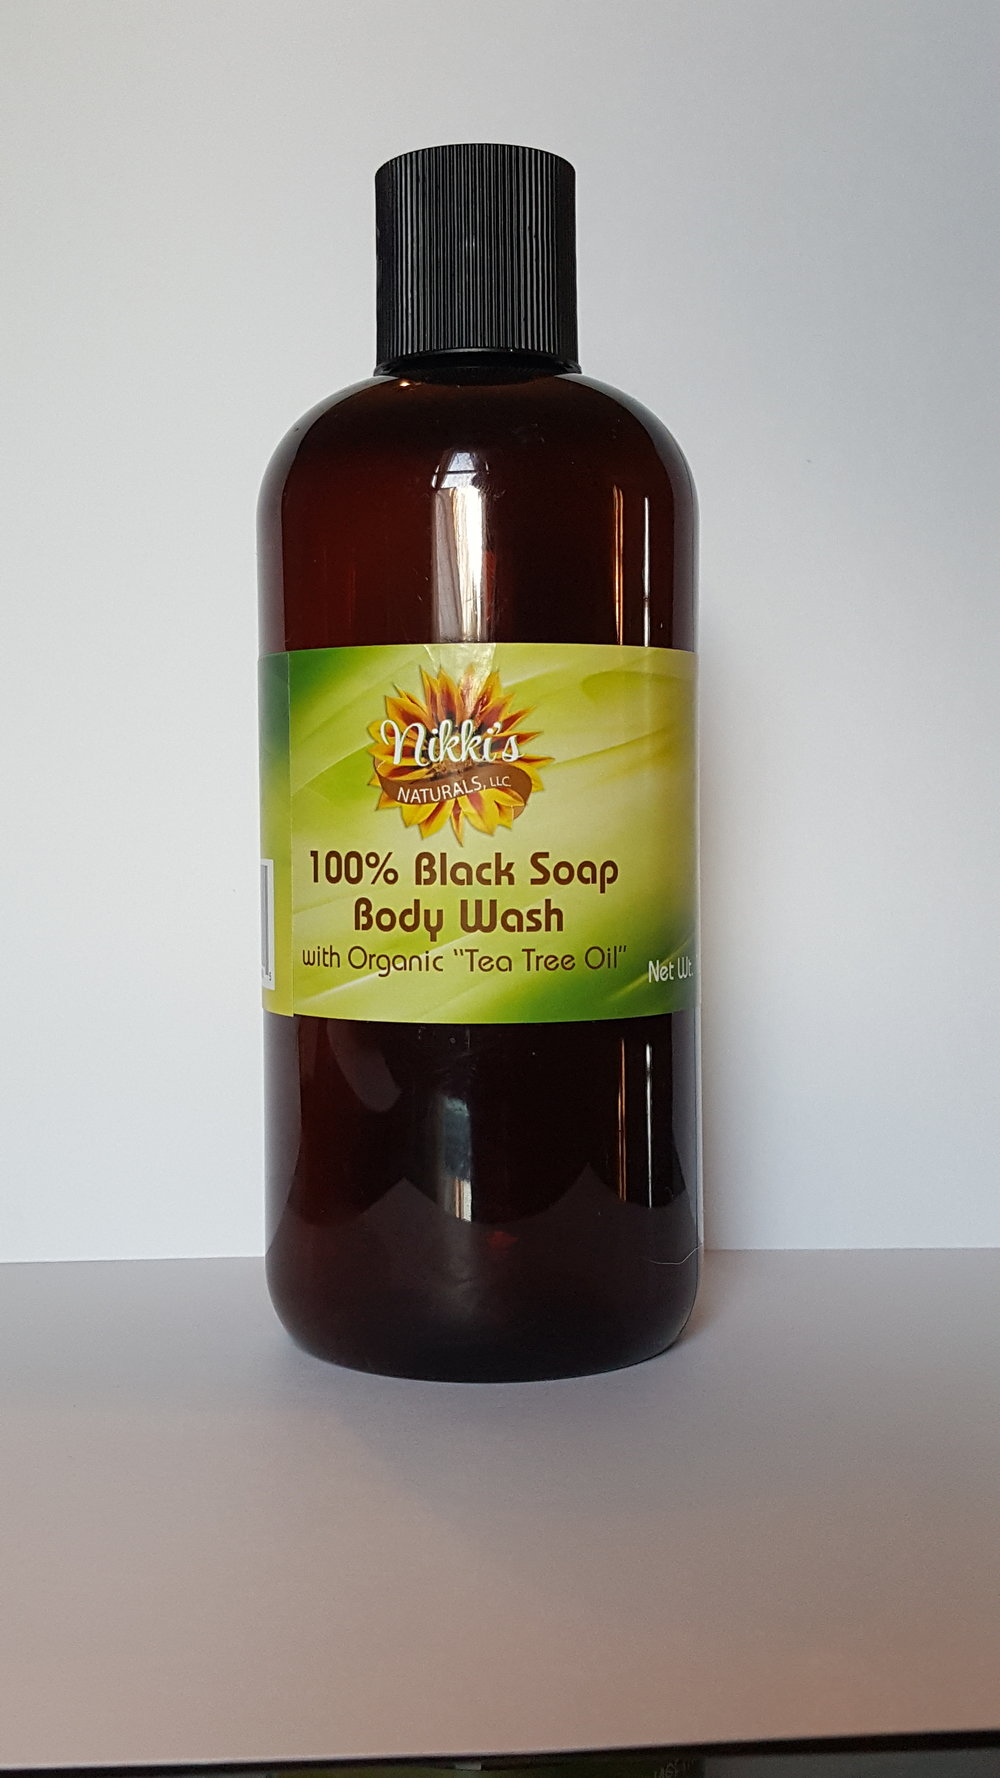 Liquid Black Soap Face and Body Wash with organic Tea Tree oil  16oz $15.00  Ingredients:  Cocoa Pod Ashes, Plantain Skin Ashes, Palm Oil and Organic Tee Tree Oil